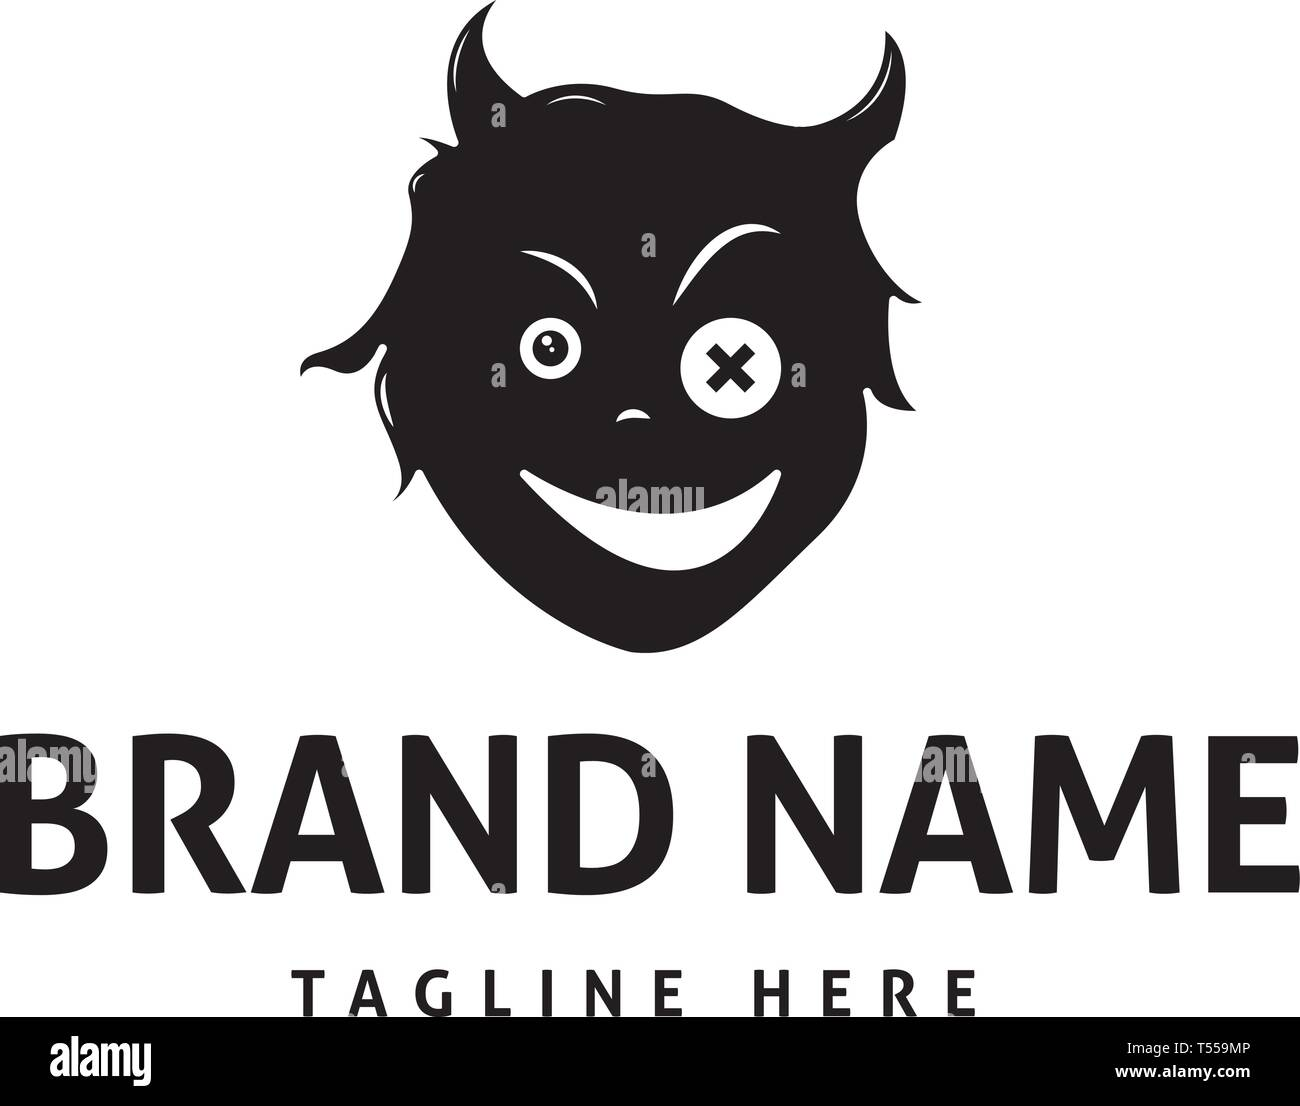 devil logo high resolution stock photography and images alamy https www alamy com devil face abstract black vector logo design image244135830 html